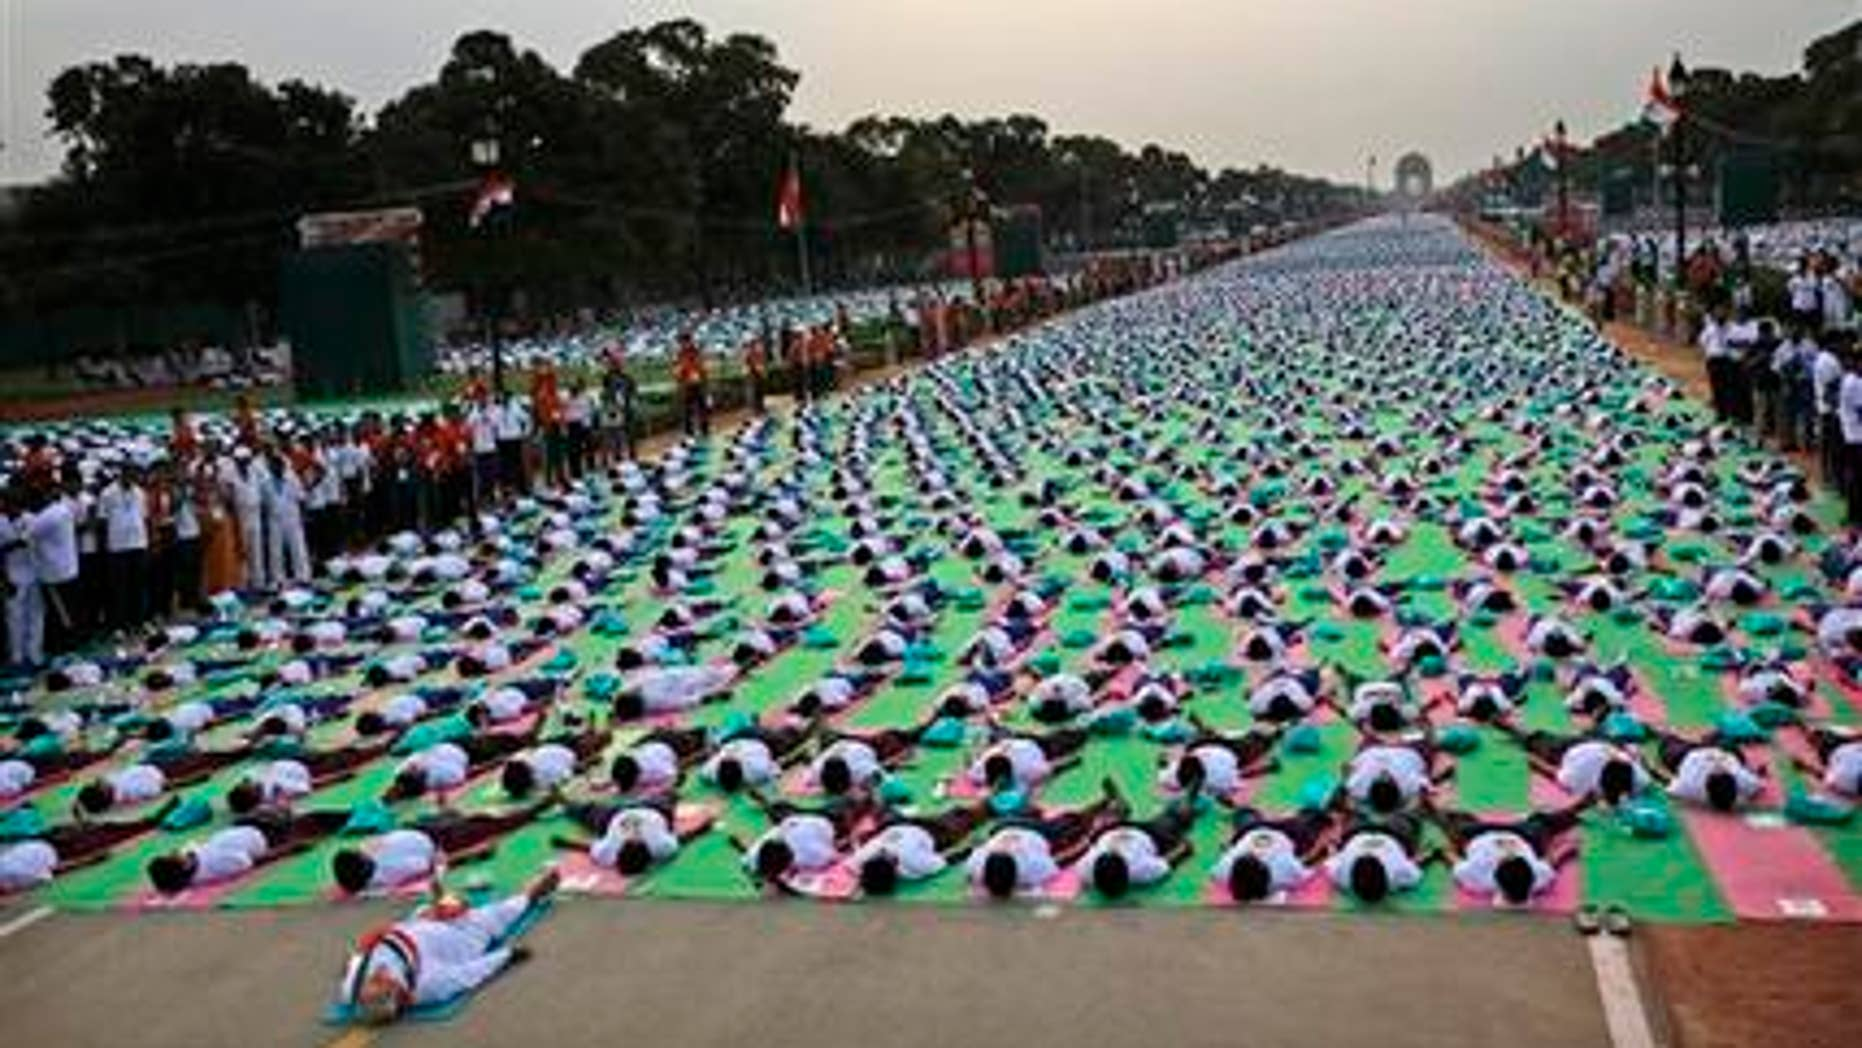 June 21, 2015: Indian Prime Minister Narendra Modi, left front, lies down on a mat as he performs yoga along with thousands of Indians on Rajpath, in New Delhi, India.